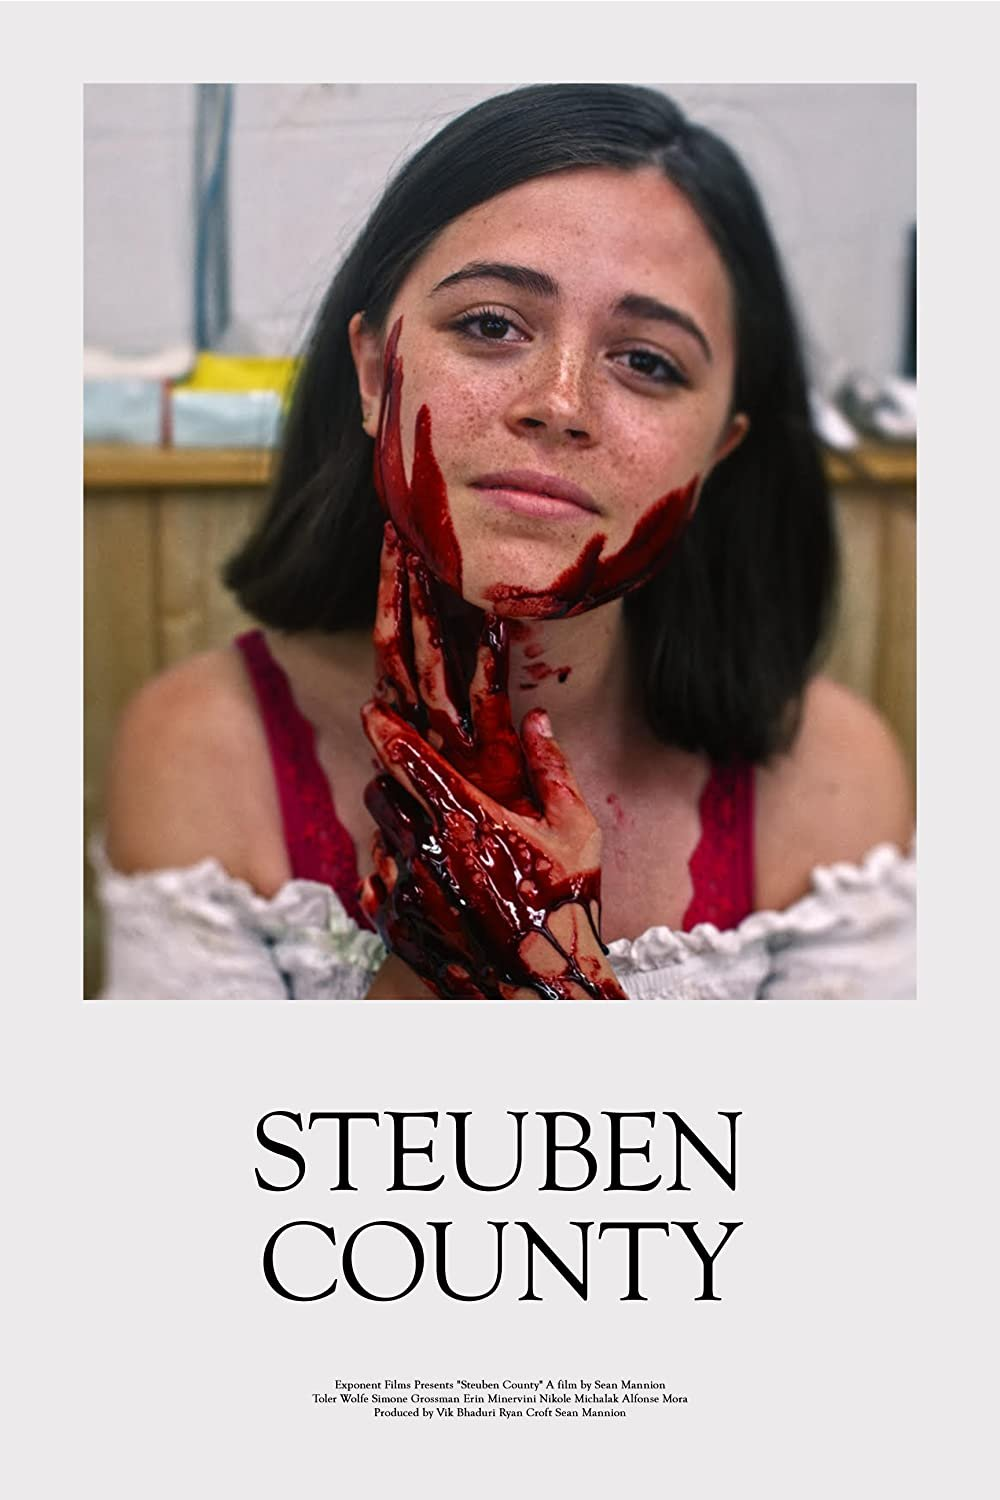 Steuben County poster image